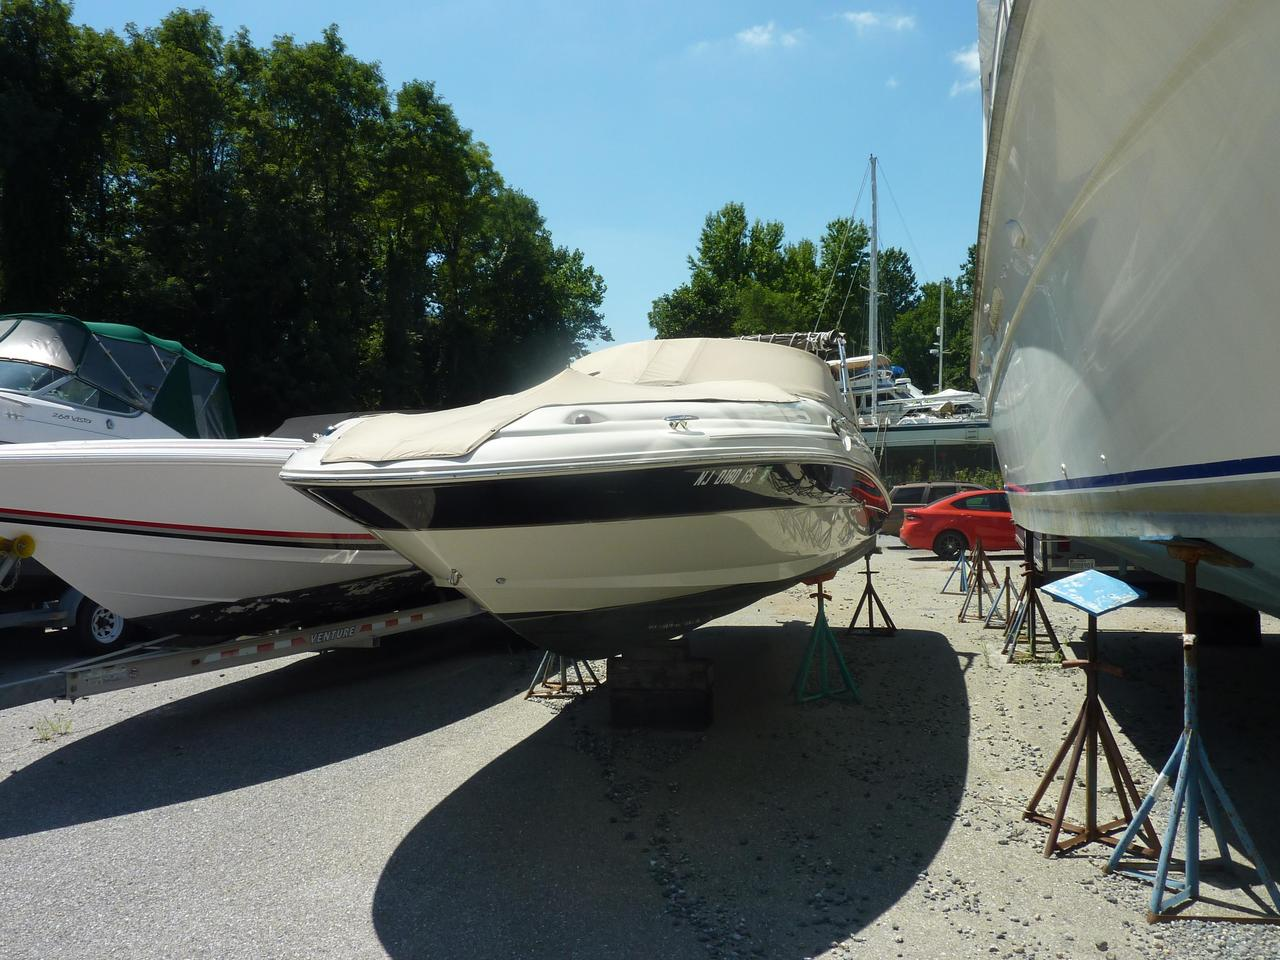 2001 Used Sea Ray 270 Sundeck Other Boat For Sale - $29,999 - Bear